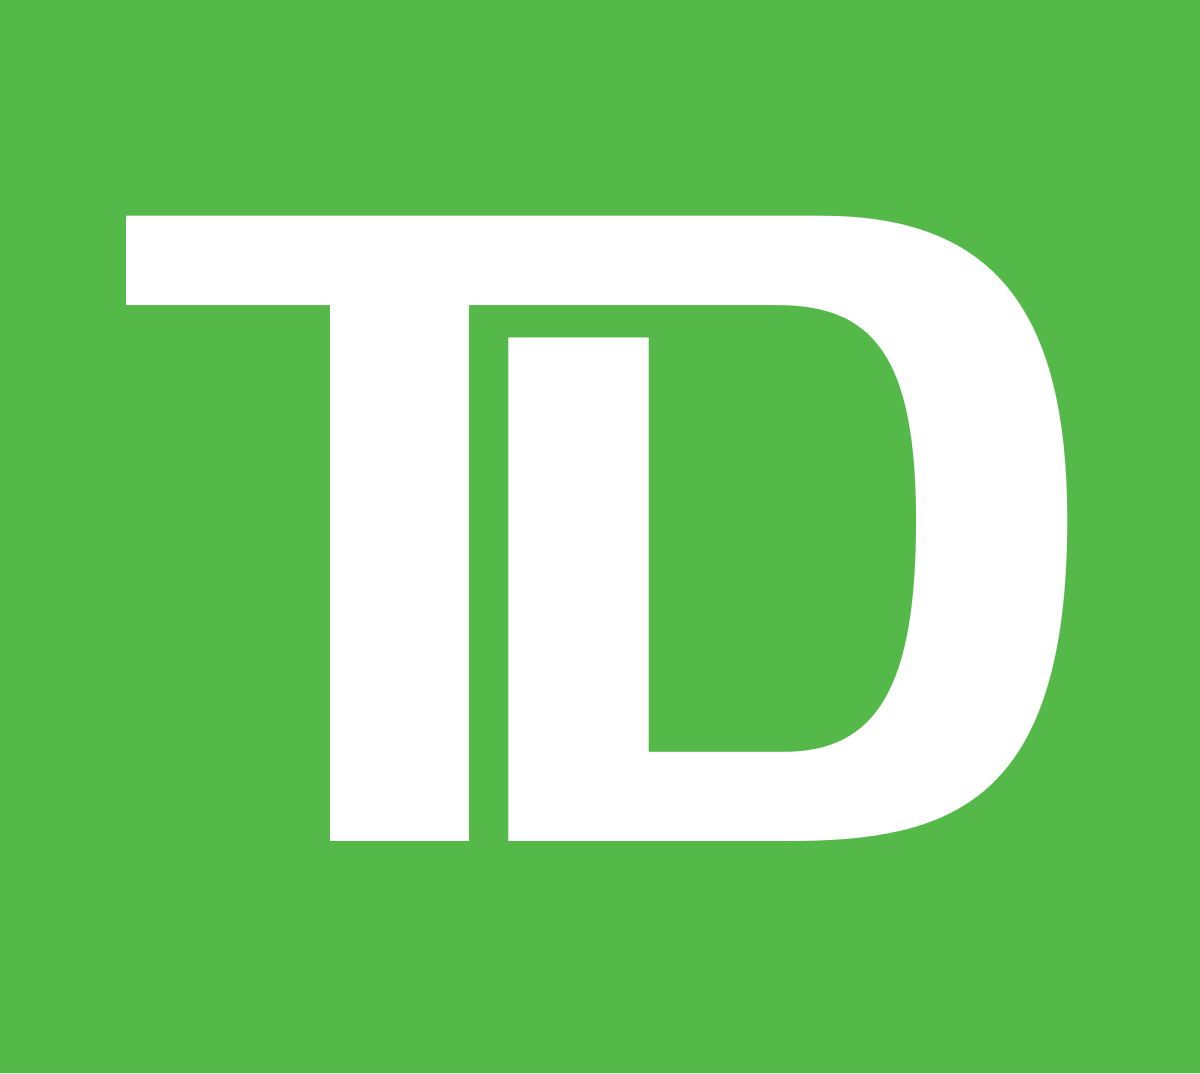 U.S. Bank Logo - Toronto–Dominion Bank